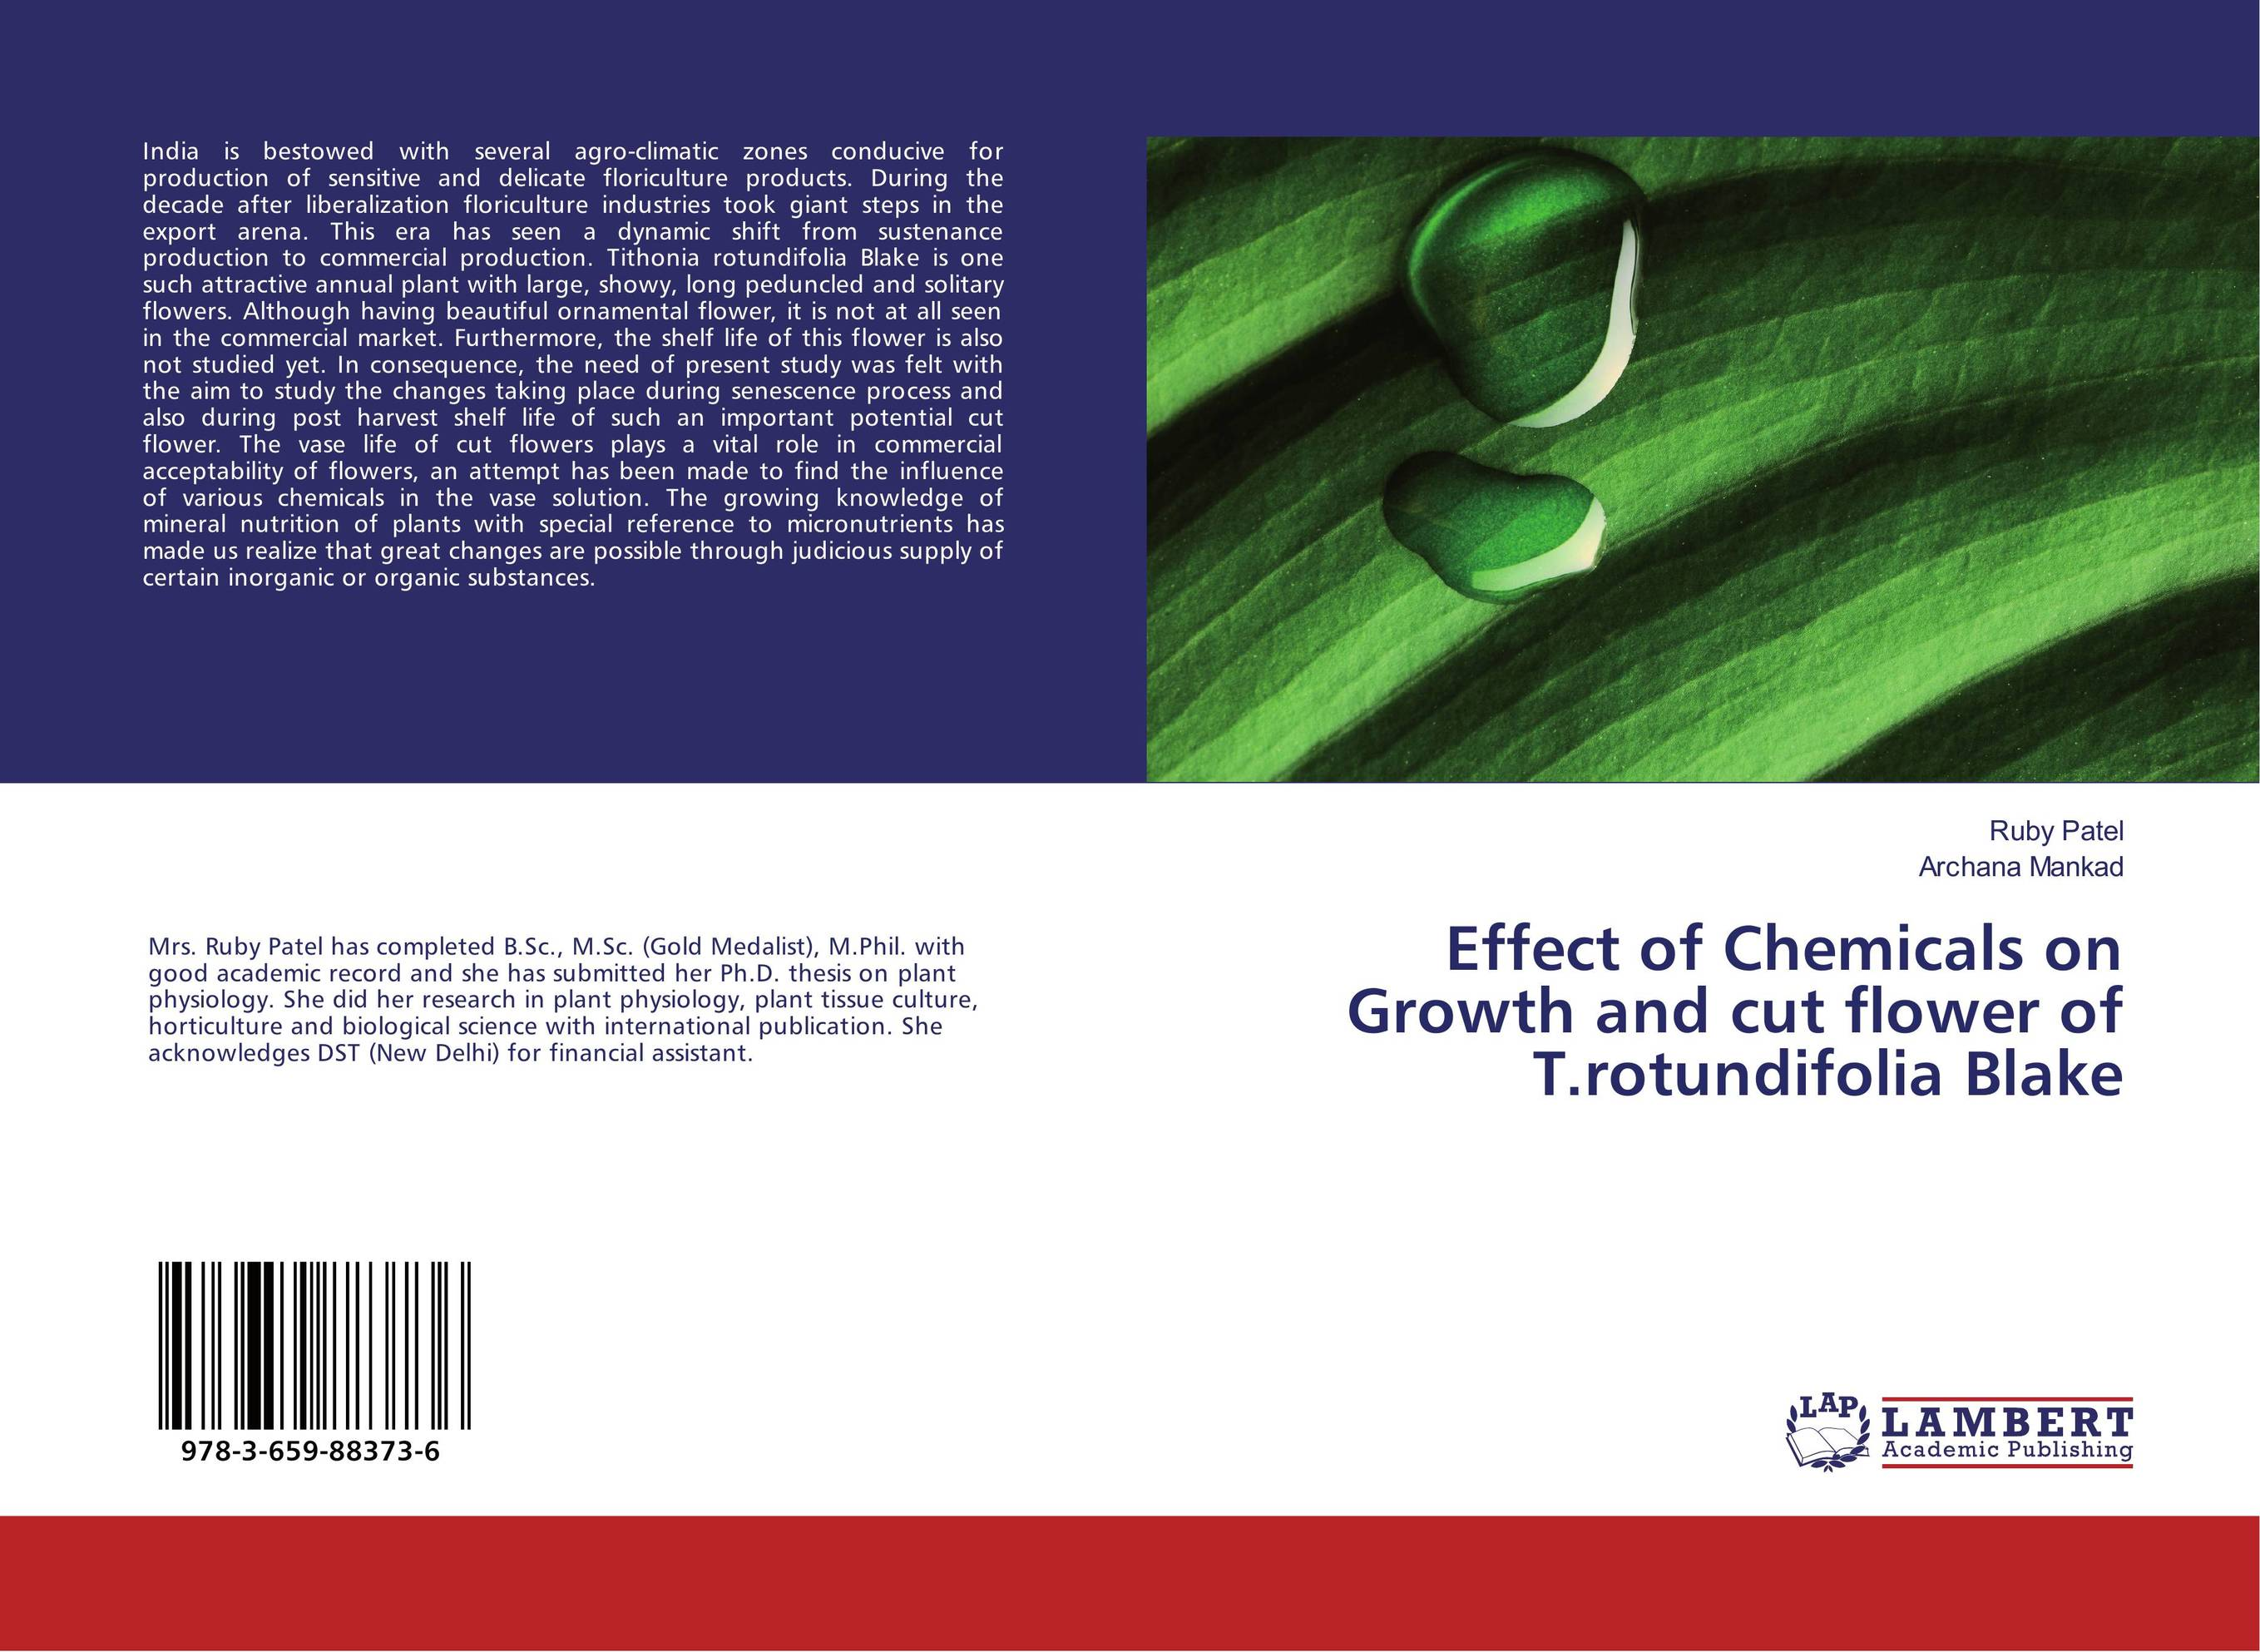 Effect of Chemicals on Growth and cut flower of T.rotundifolia Blake usha rani m uma jyothi k and syam sundar reddy p study on effect of growth regulators and micronutrients on okra growth and yield of okra